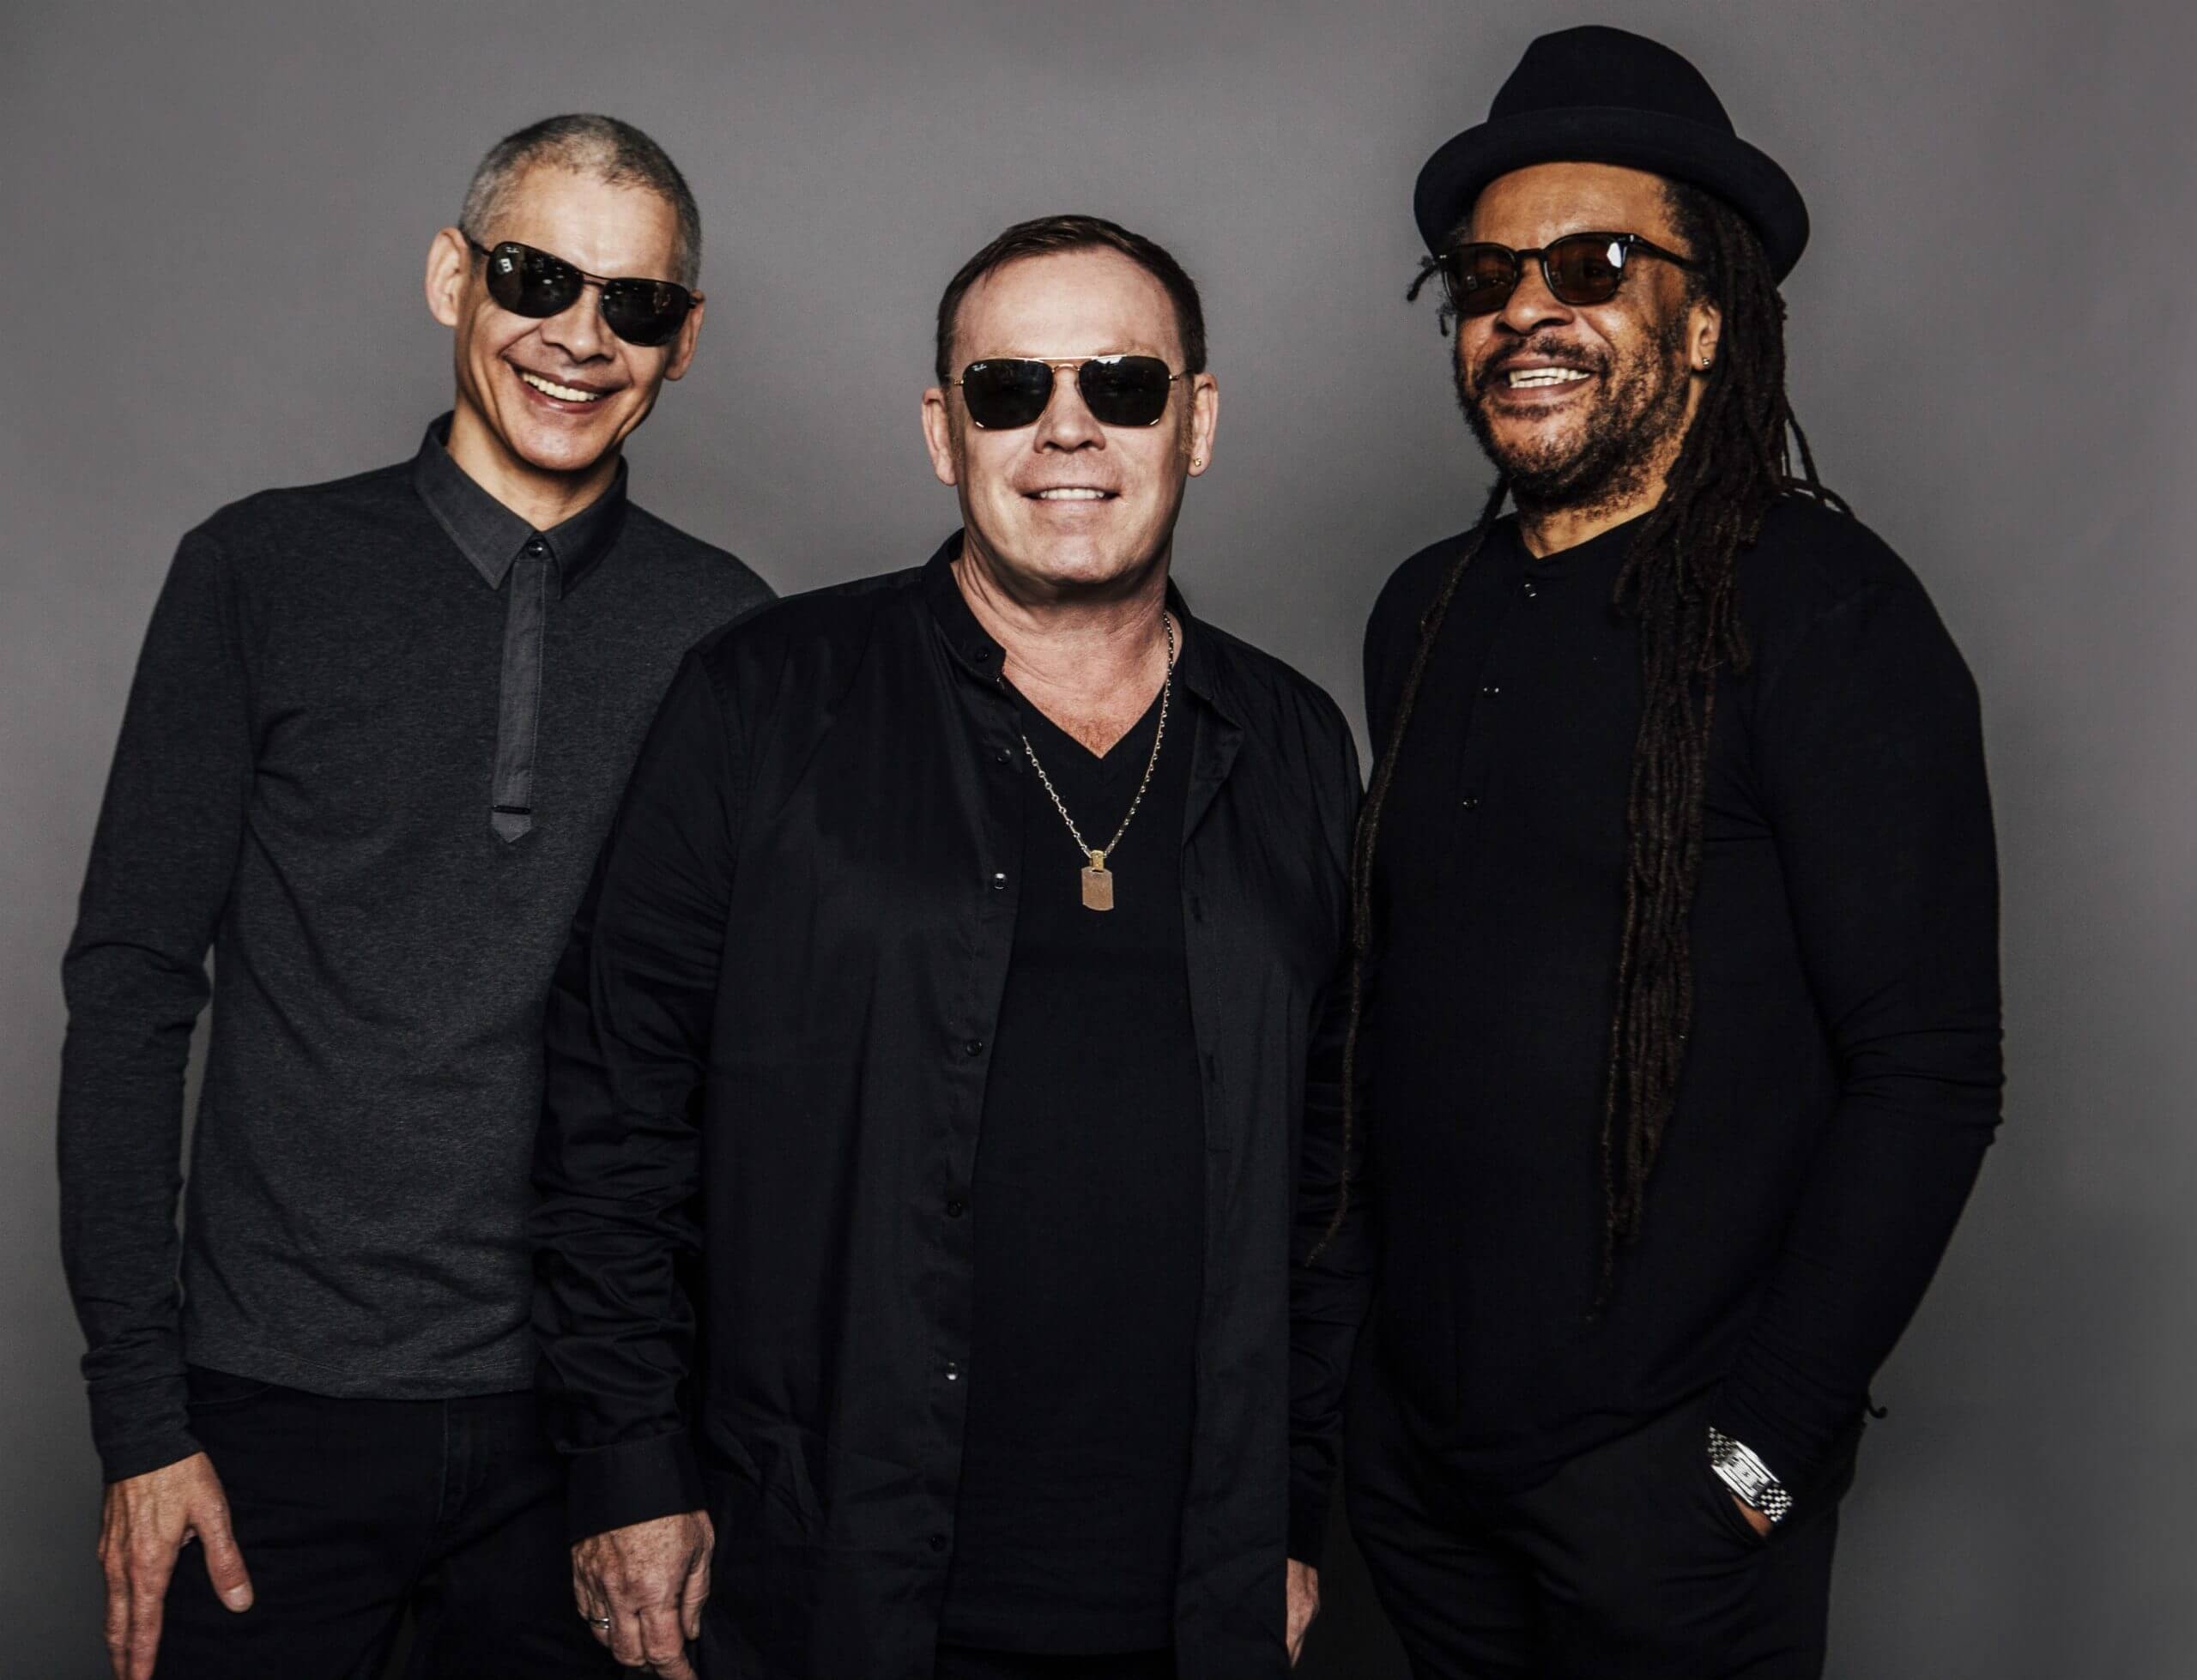 Legendary British Reggae Band UB40 FEATURING ALI CAMPBELL, ASTRO AND MICKEY VIRTUE set to Perform in Bahrain as Part of Spring of Culture